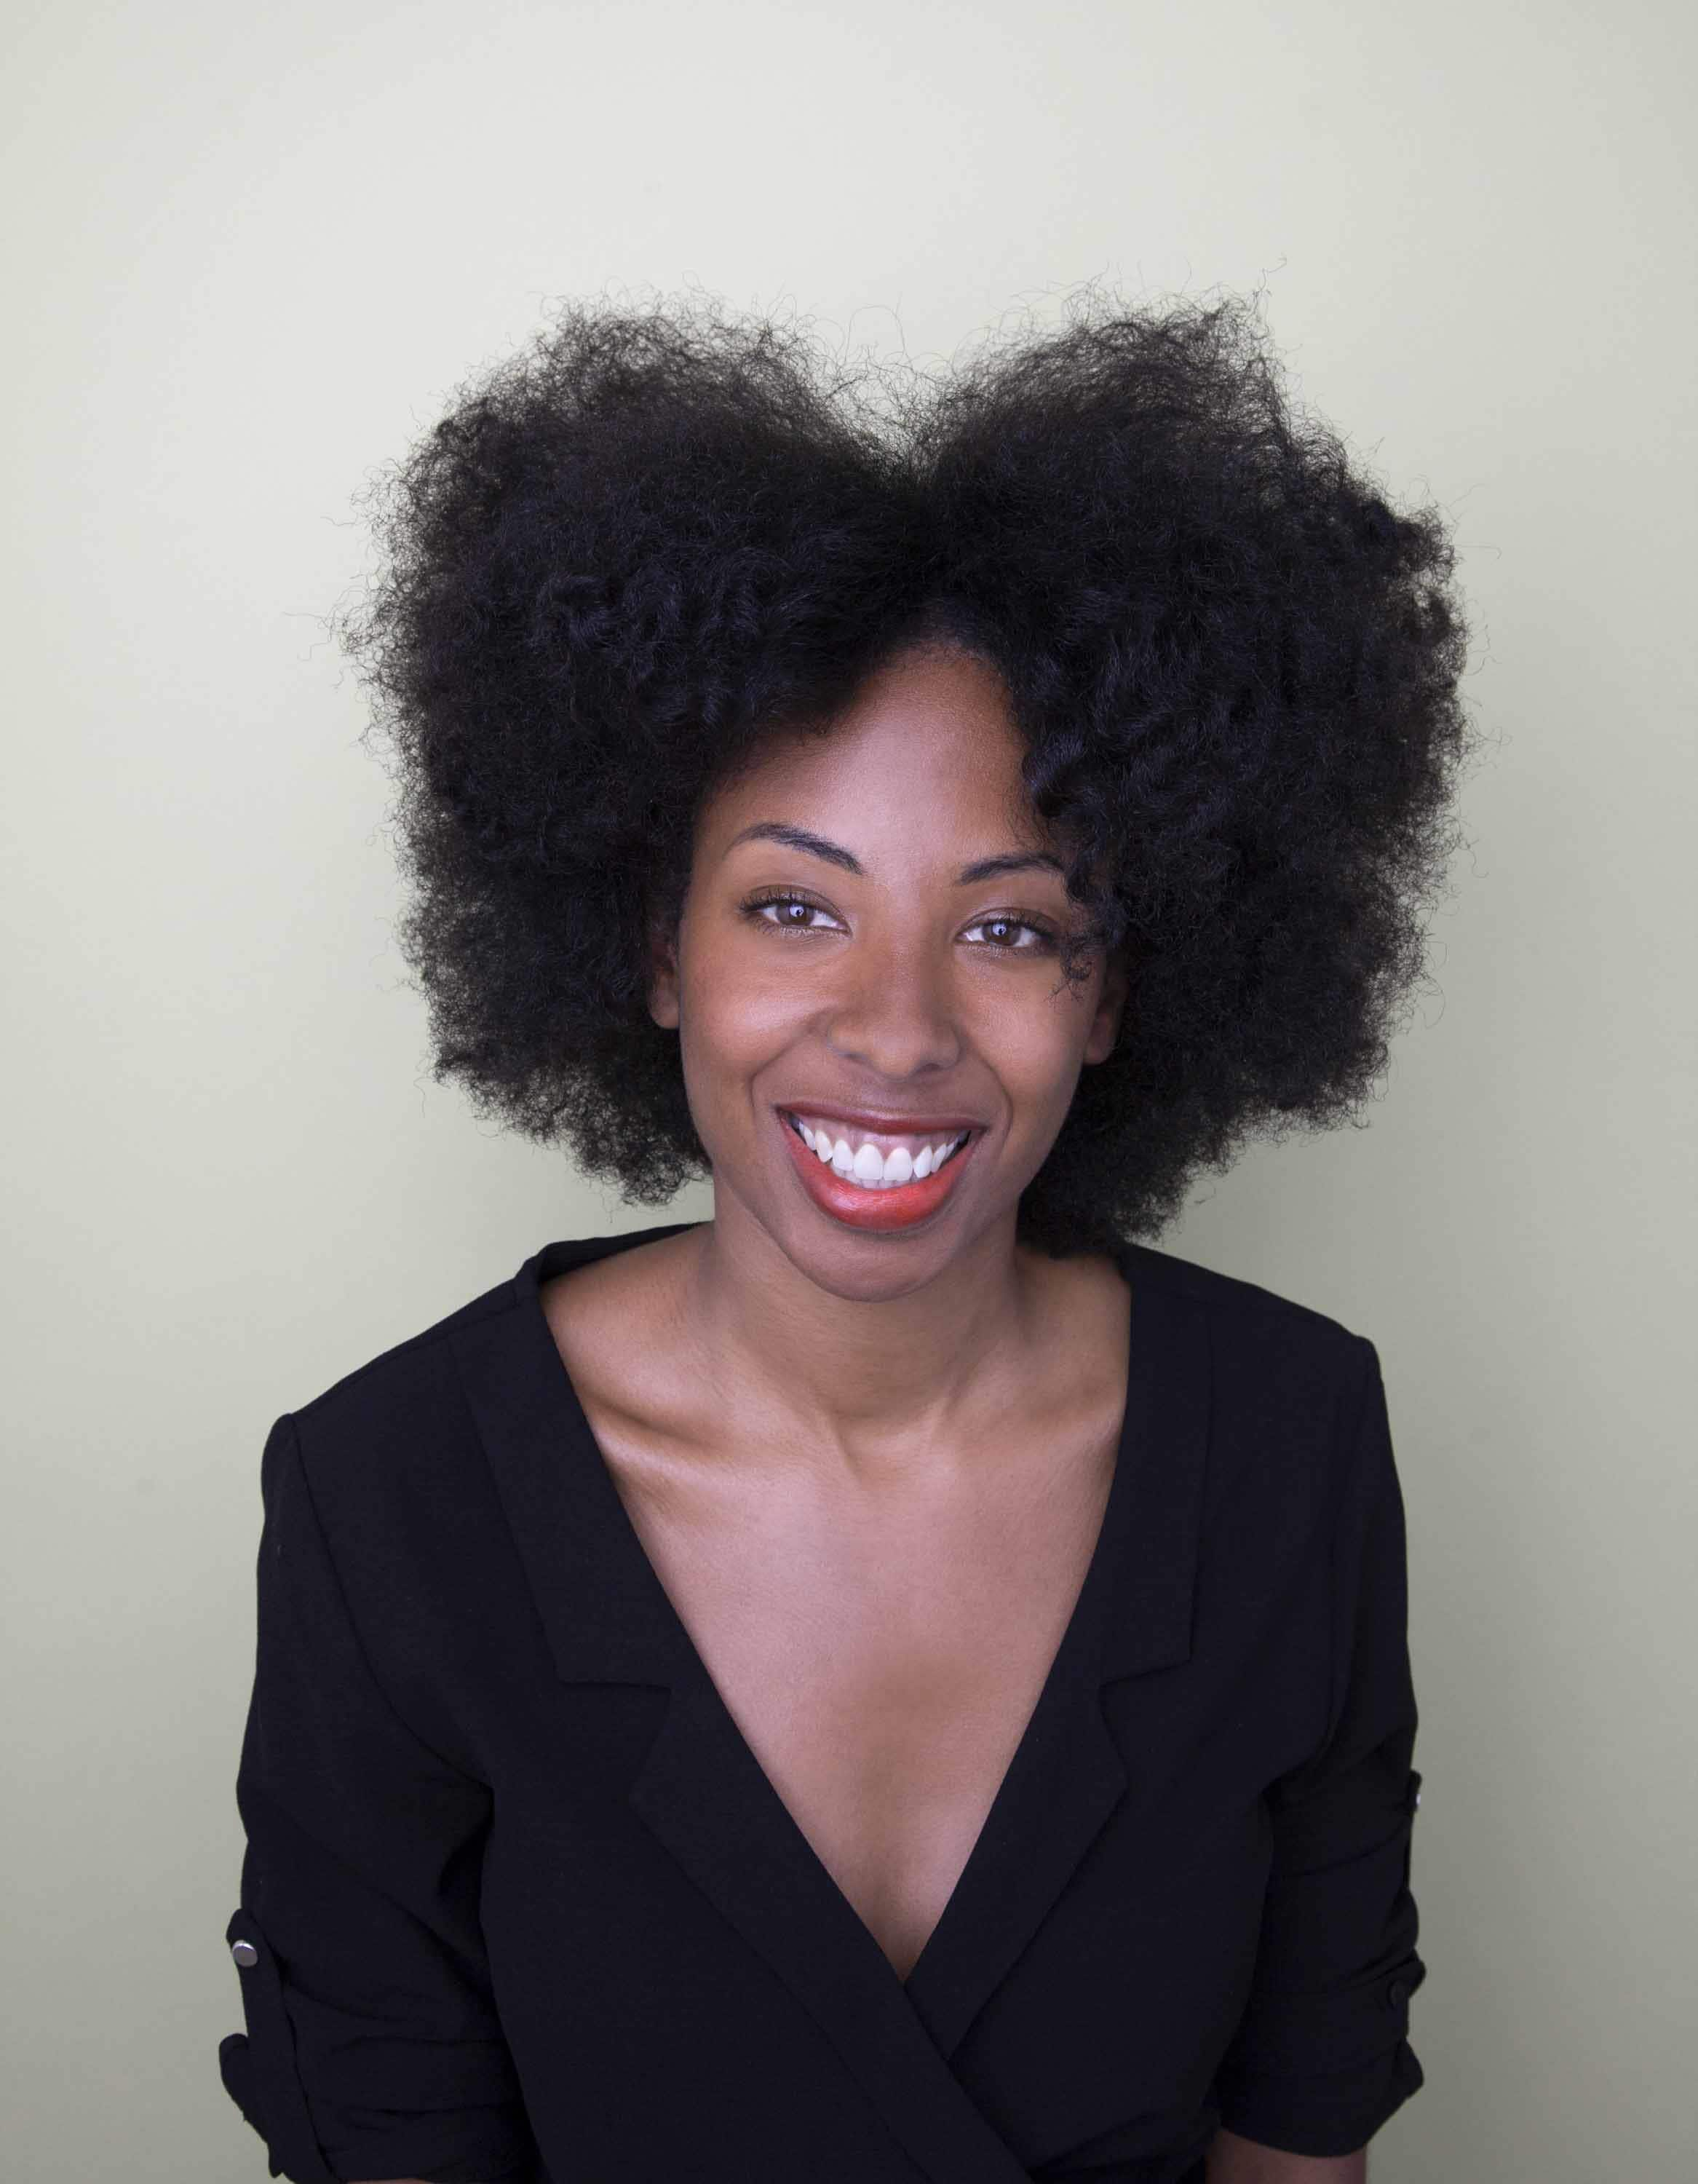 Afro hairstyles and hair trends plus afro hair styling tips afro hairstyles with a cool center part urmus Gallery